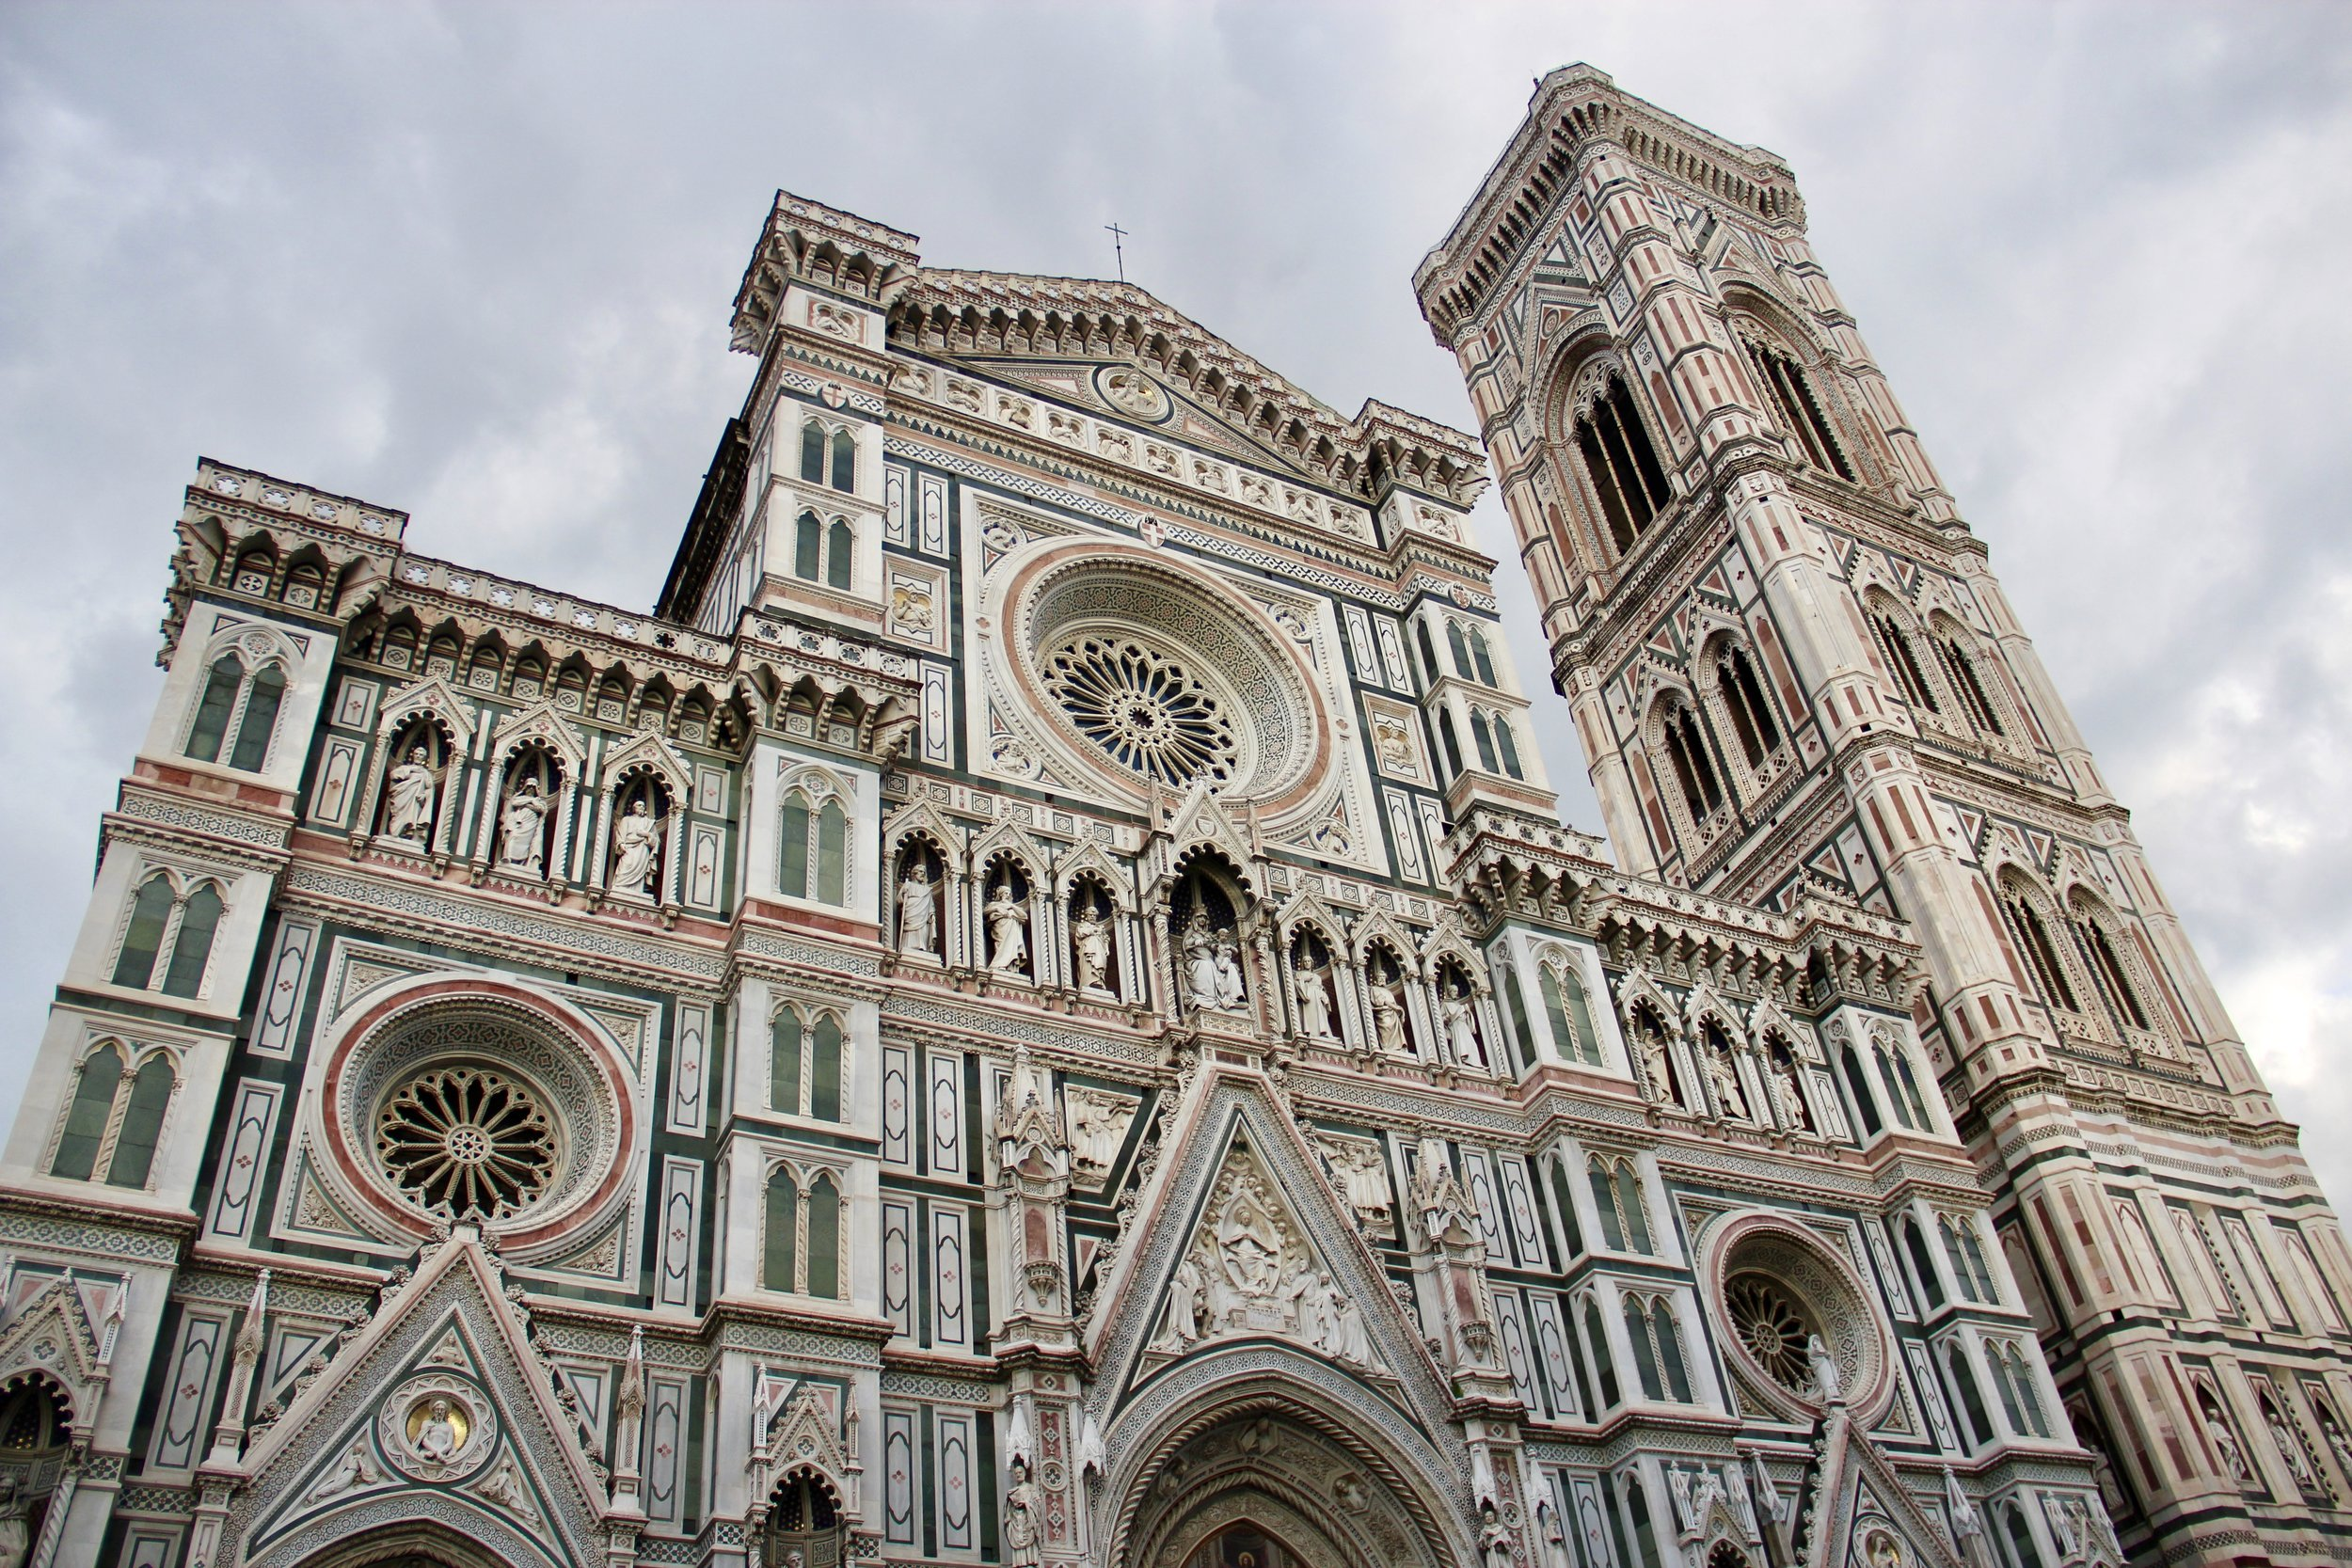 The Duomo's ornate cathedral.